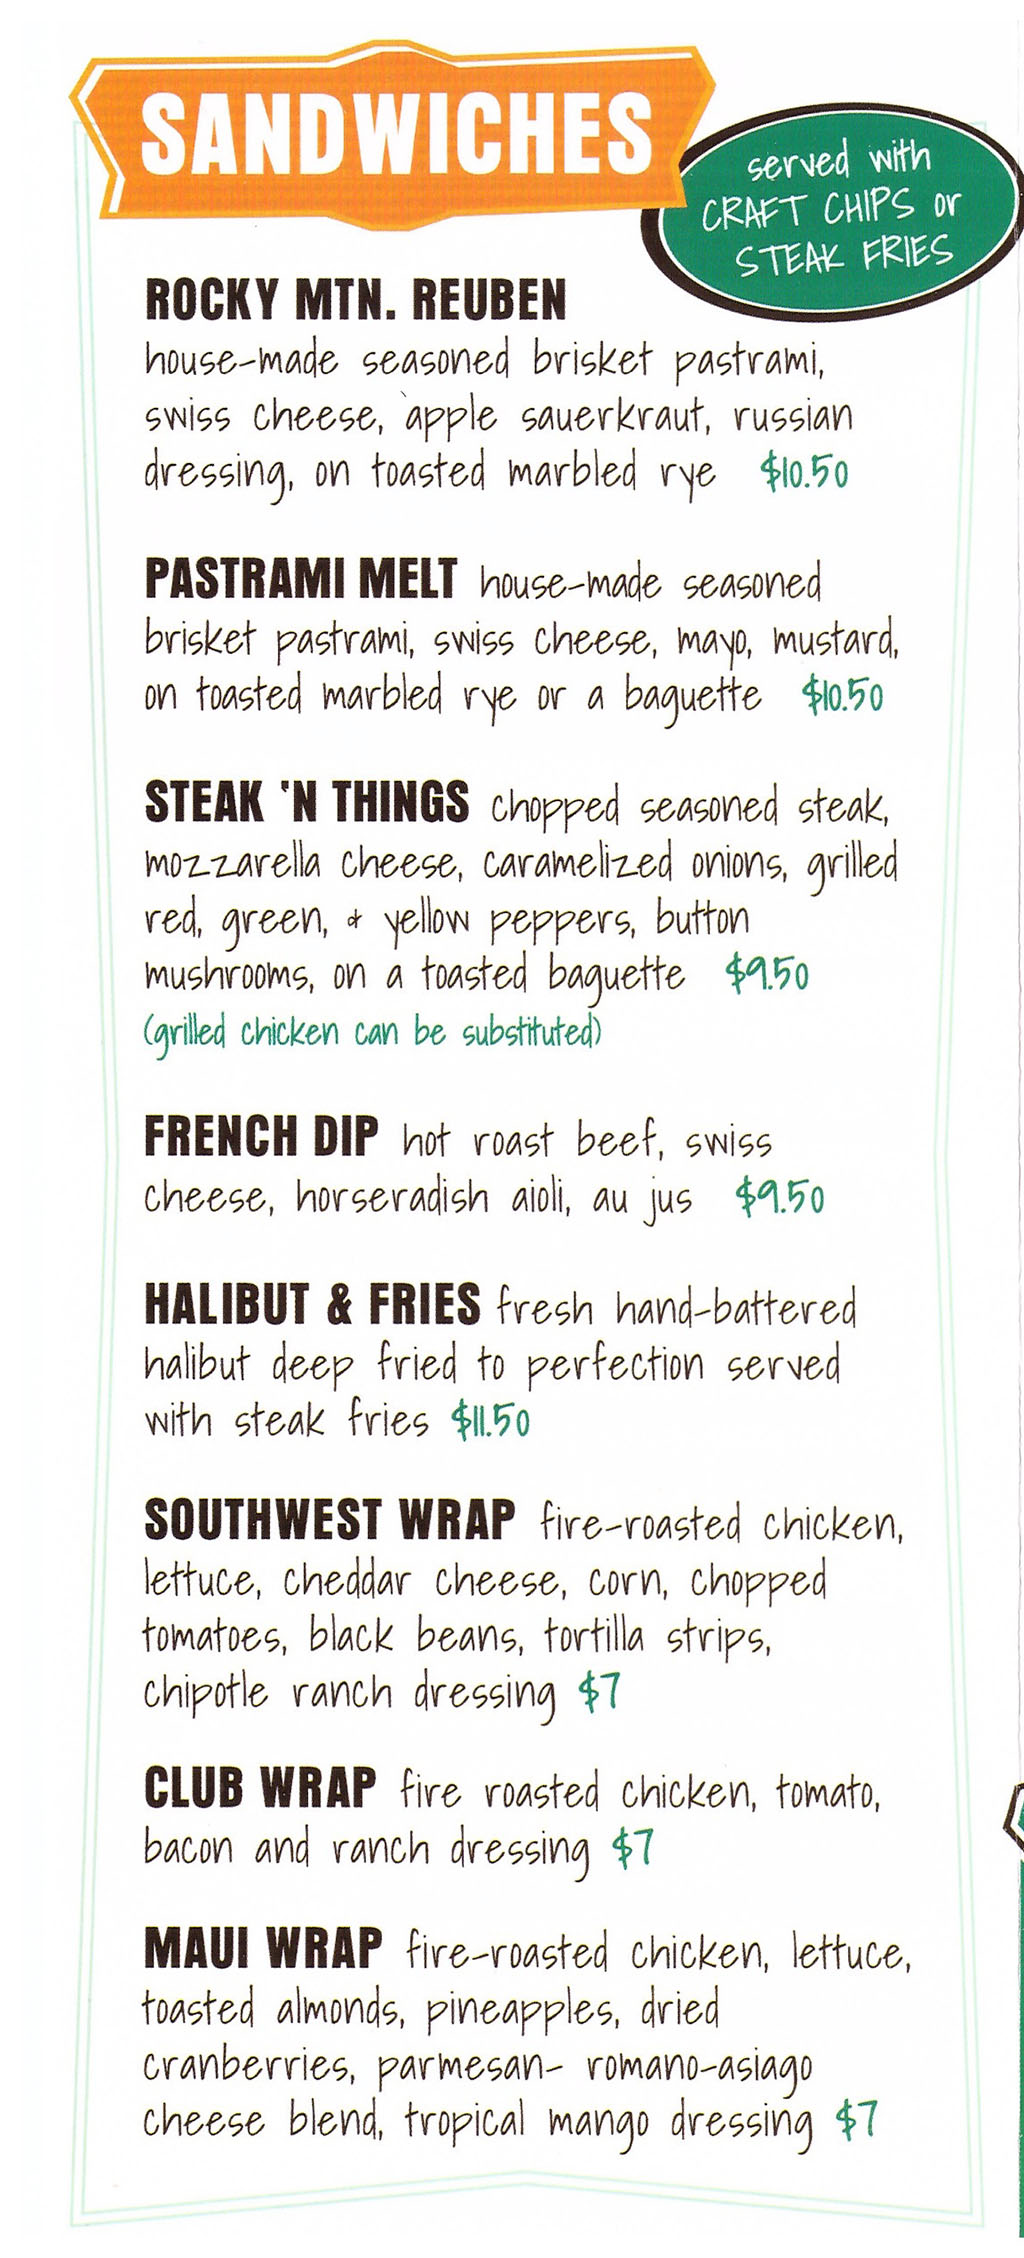 Warrens Craft Burger menu - sandwiches